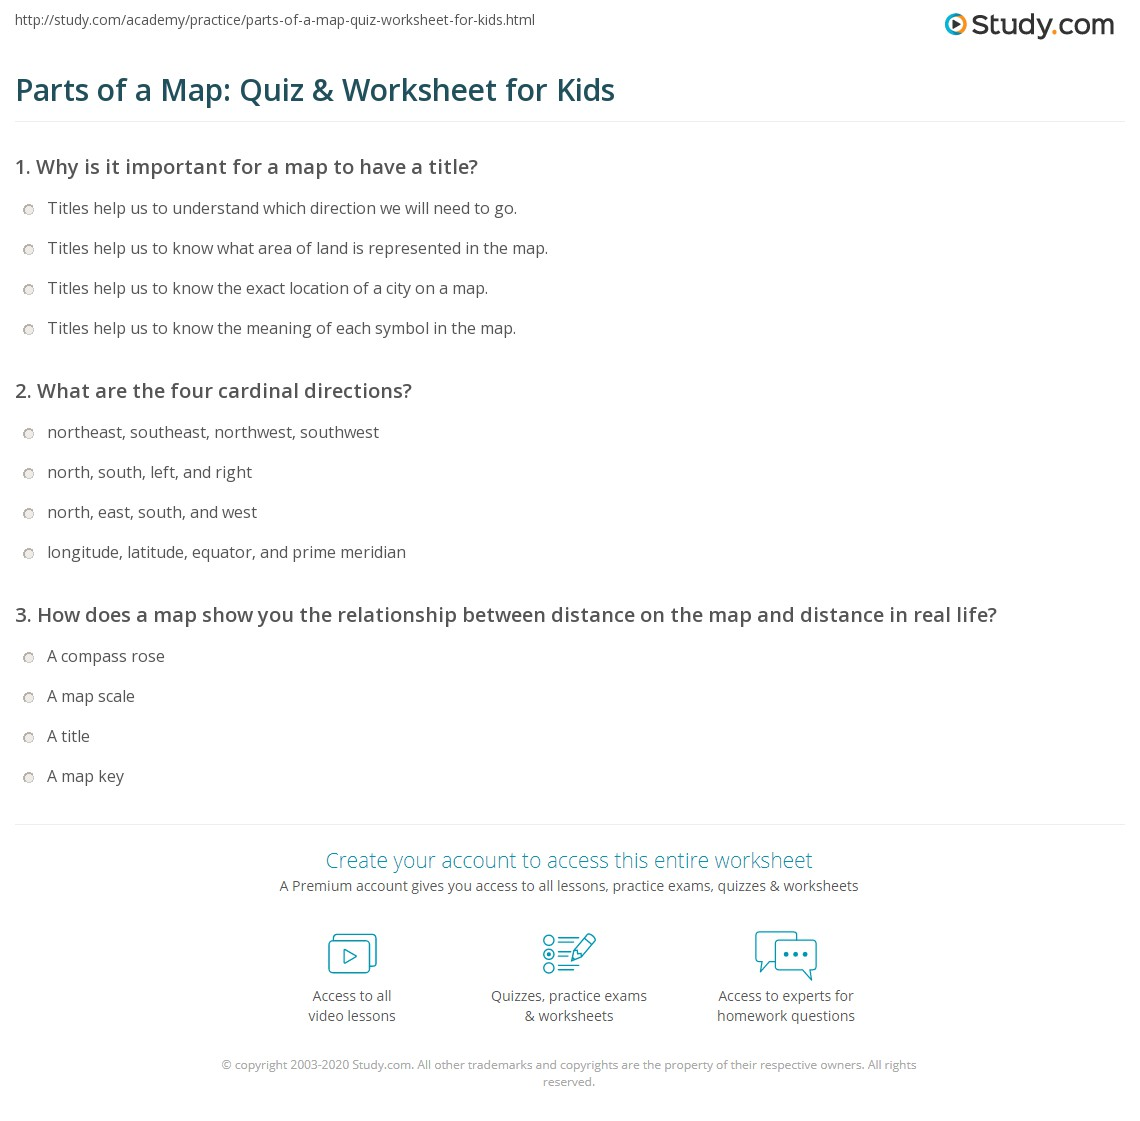 Worksheet Parts Of A Map Worksheet parts of a map quiz worksheet for kids study com print lesson worksheet